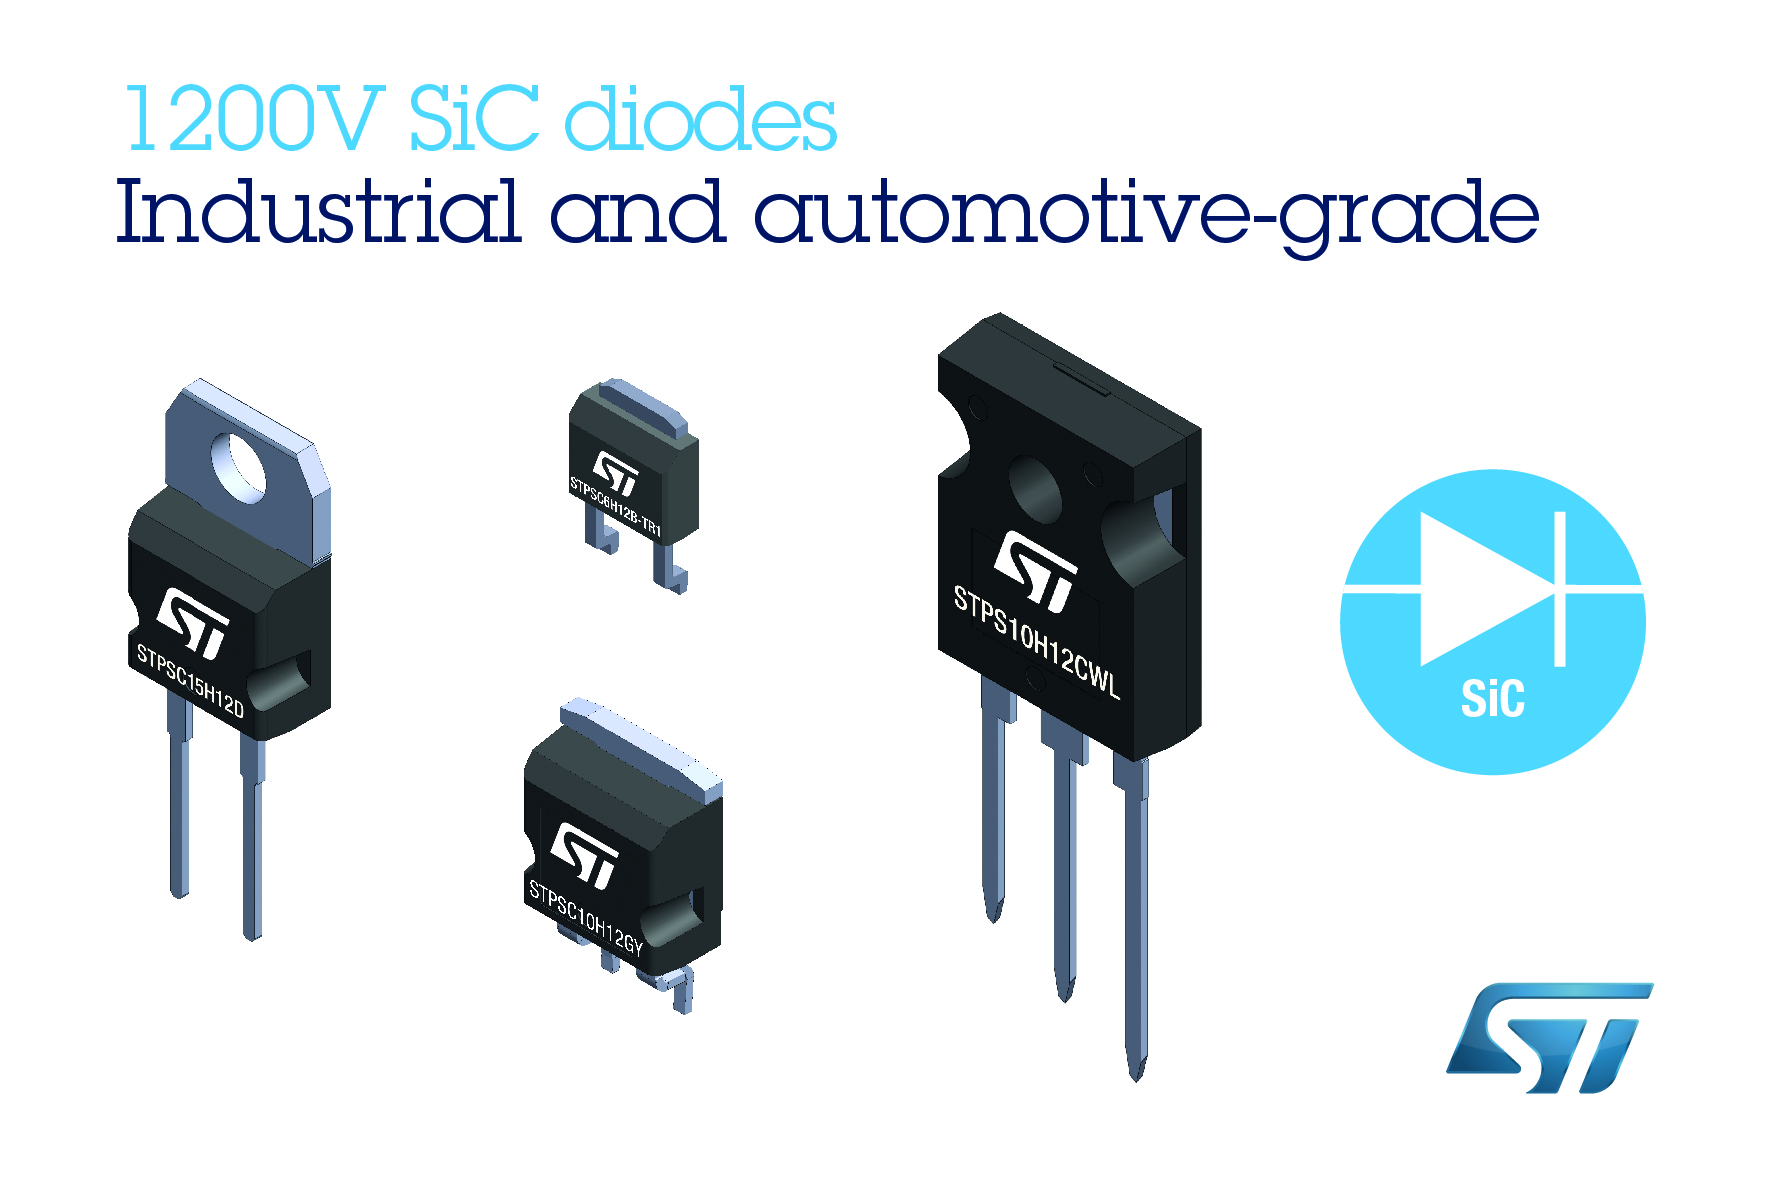 Diodes deliver superior efficiency and state-of-the-art robustness